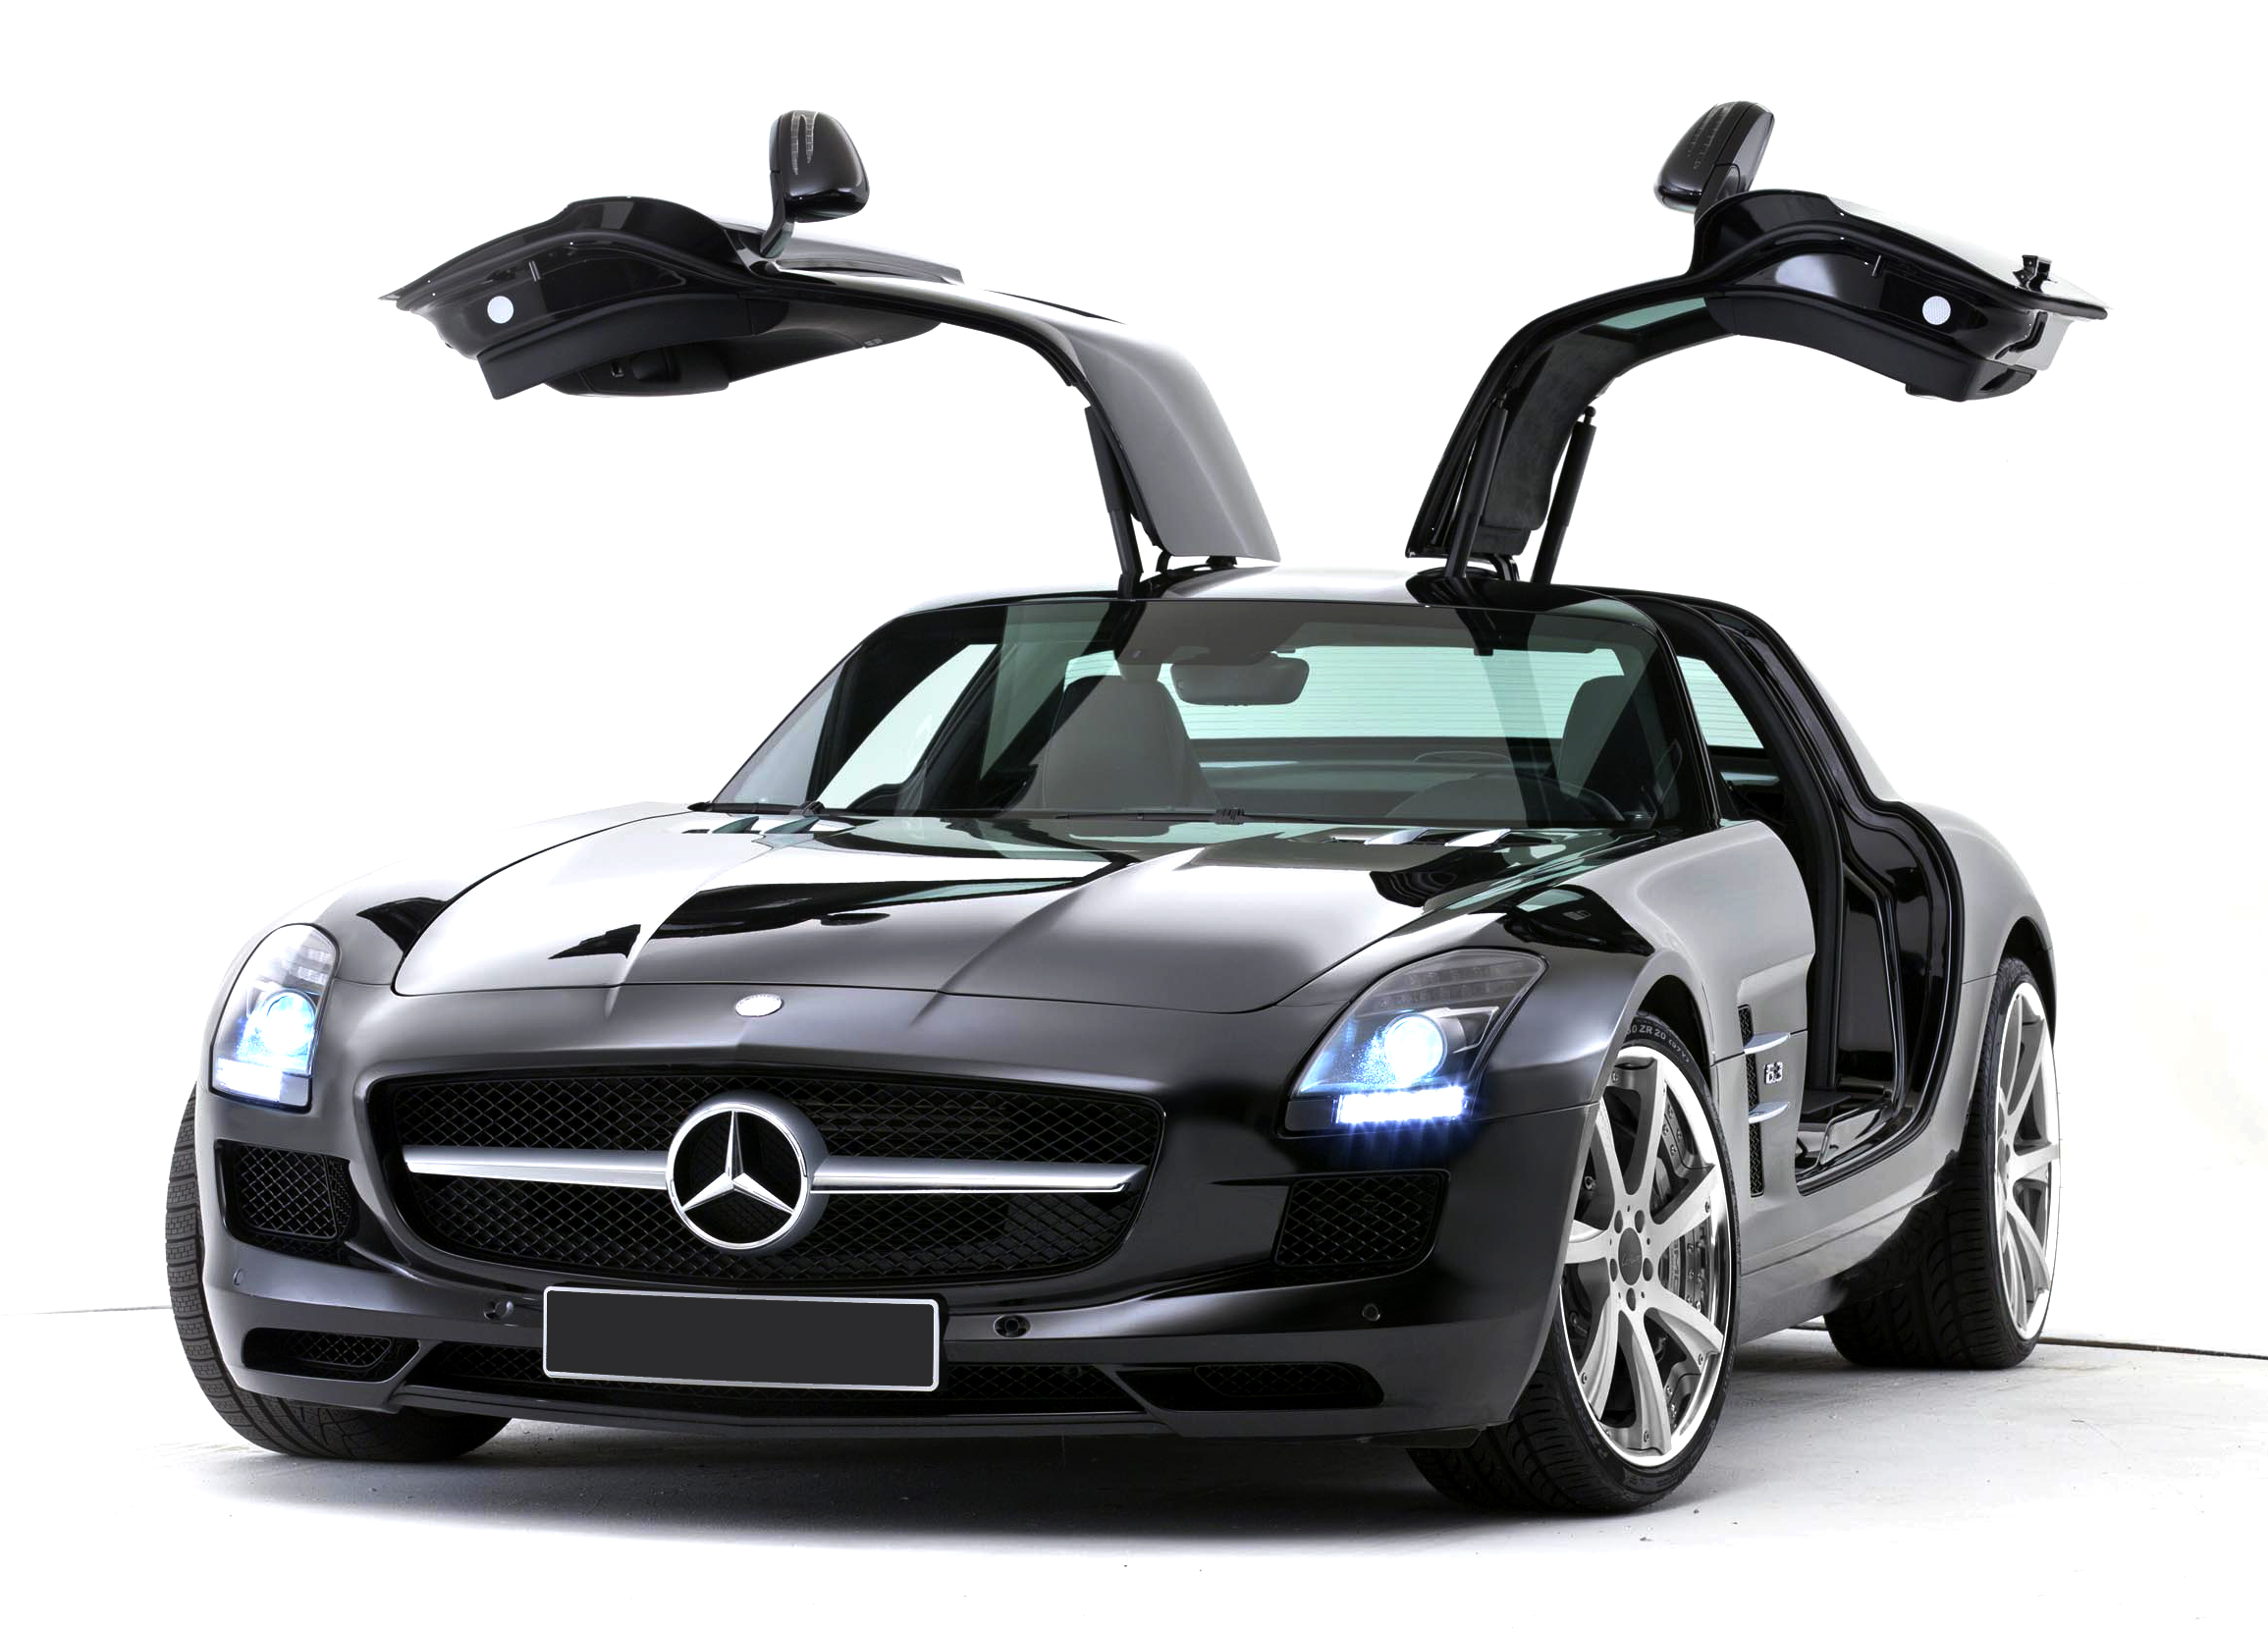 Mercedes Benz SLS AMG, £100   The Science Museum Shop, www.sciencemuseumshop.co.uk, 0151 650 6061, Product is available for mail order. Available from October